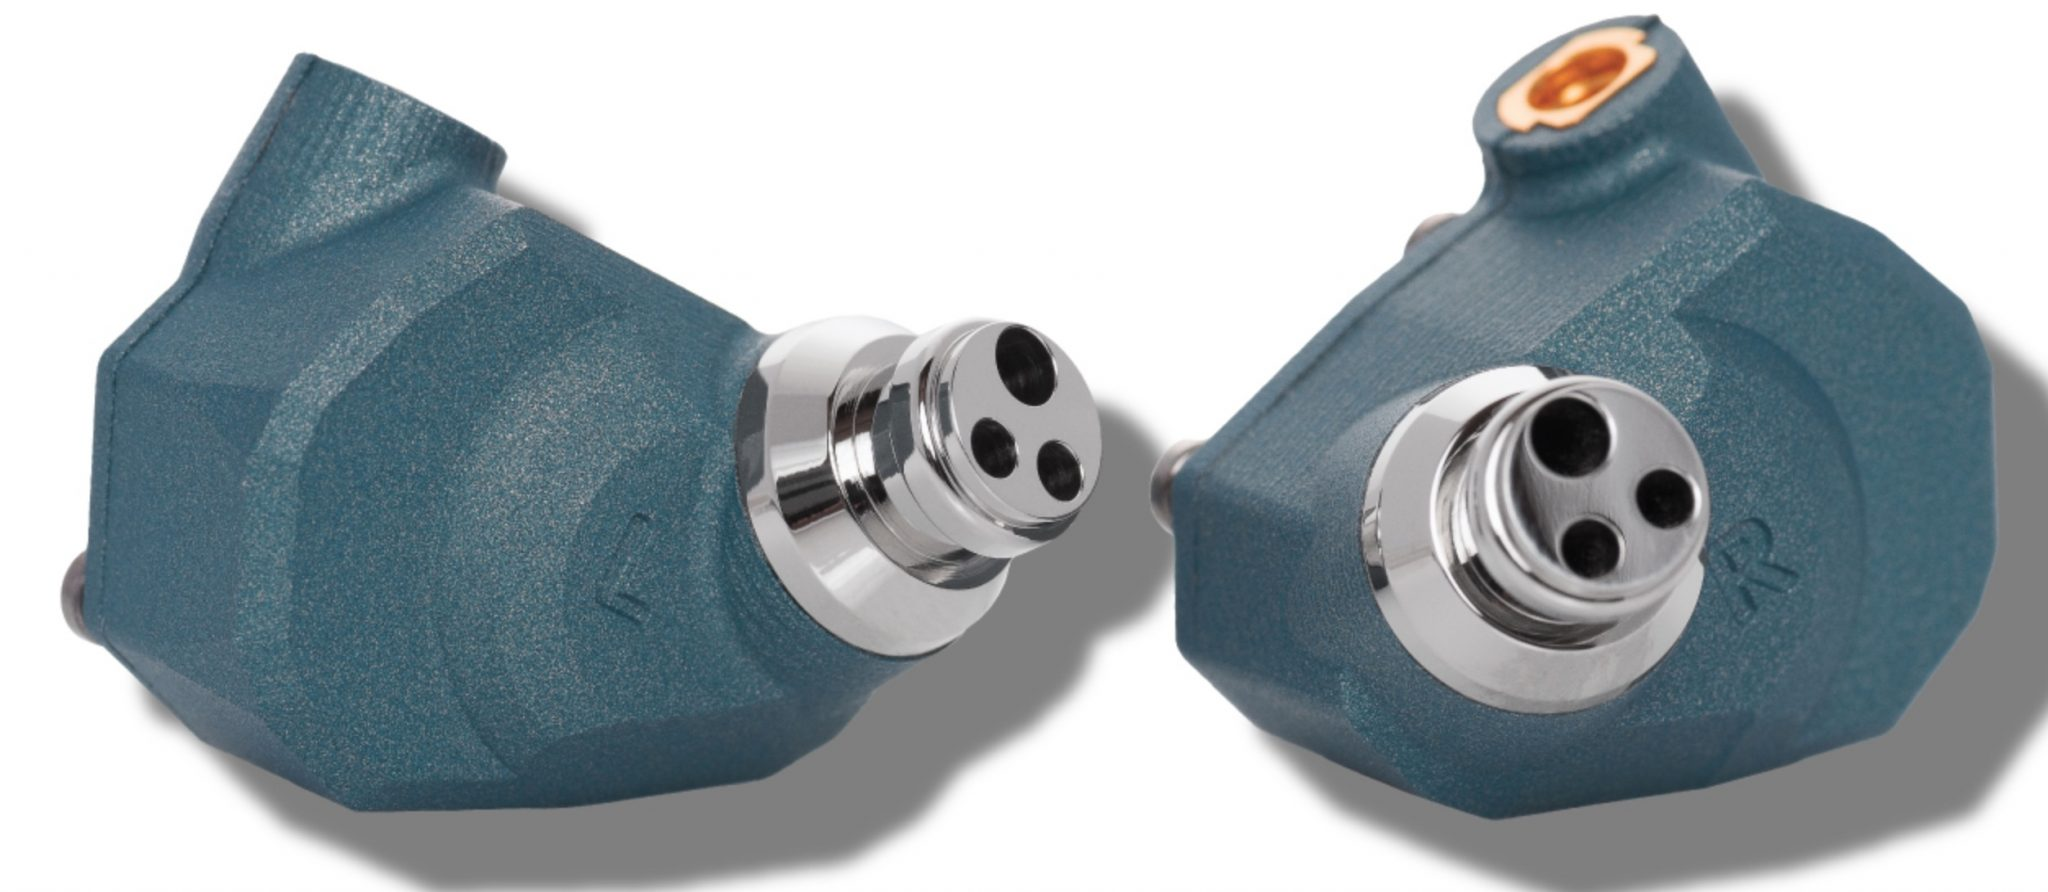 Campfire Audio: Andromeda CK earphones in Pacific Blue